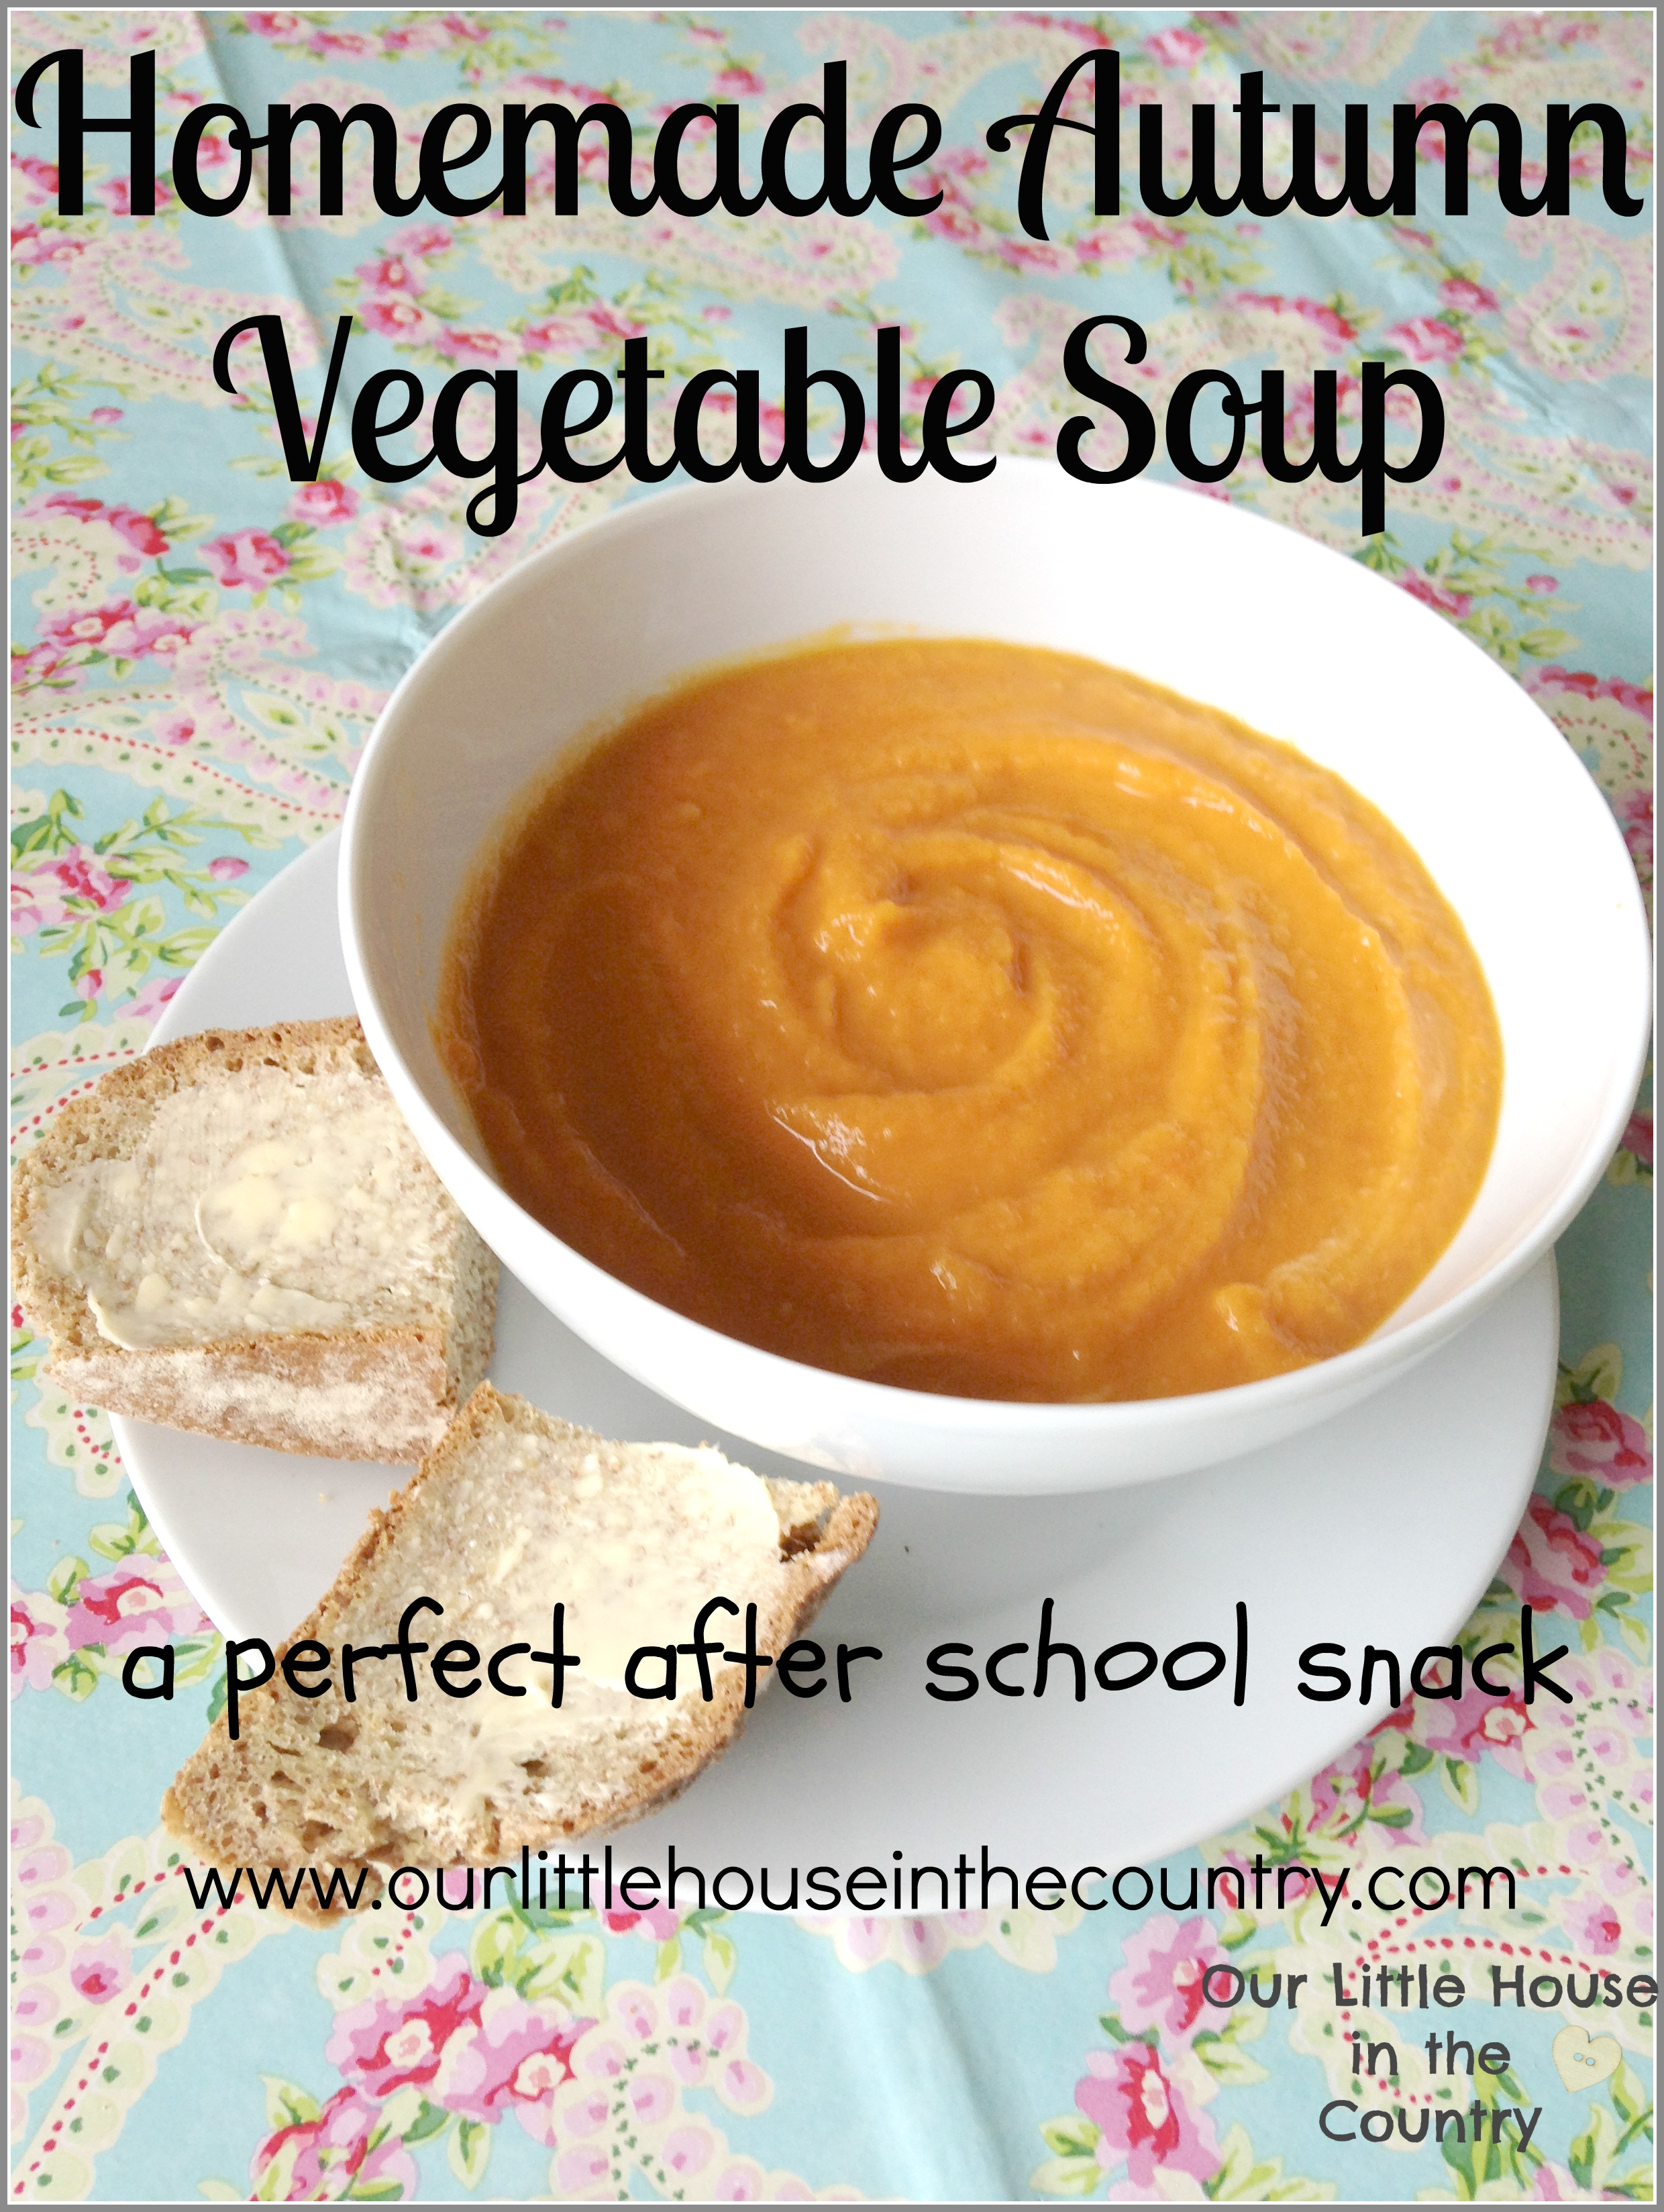 Homemade Autumn Vegetable Soup Recipe - a perfect after school snack ...